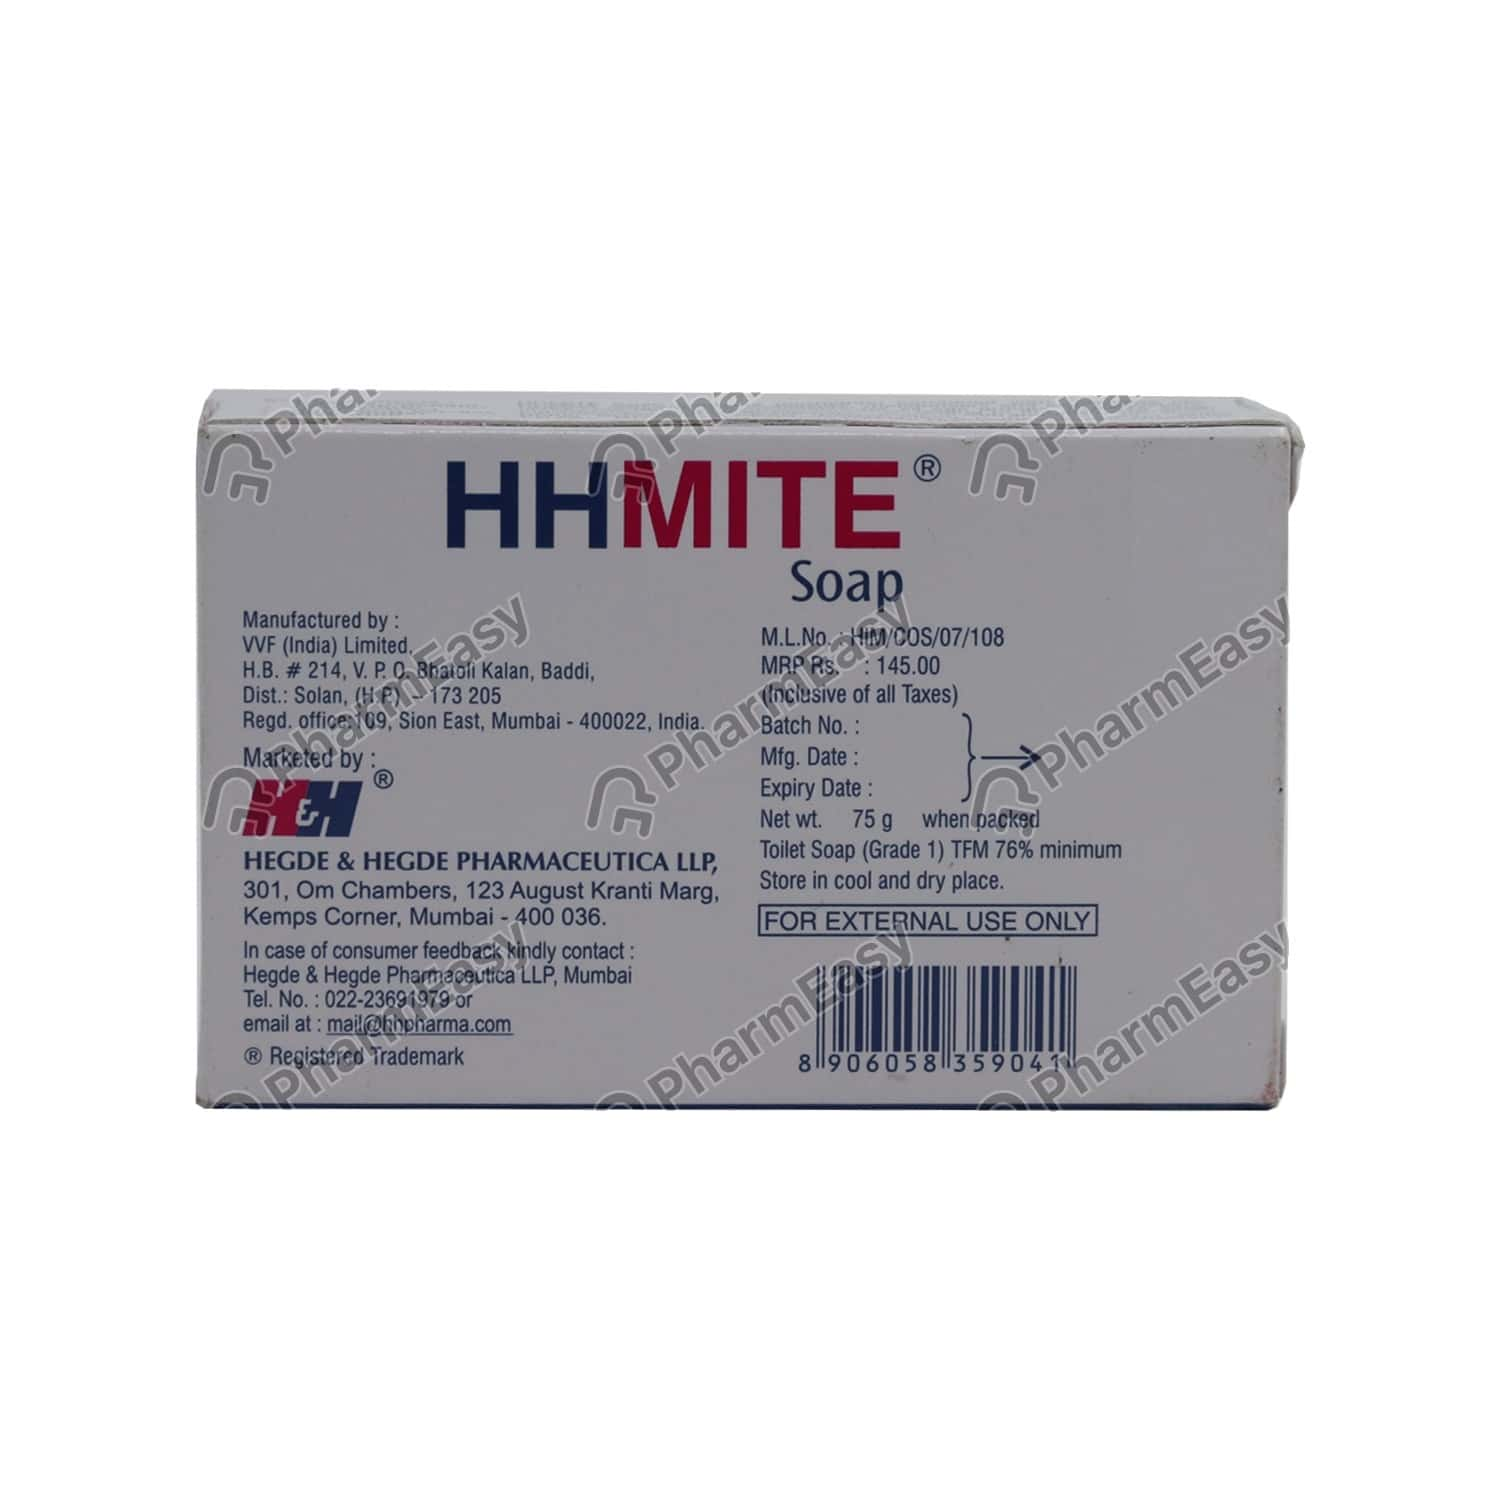 Hhmite Wrap Of 75gm Soap